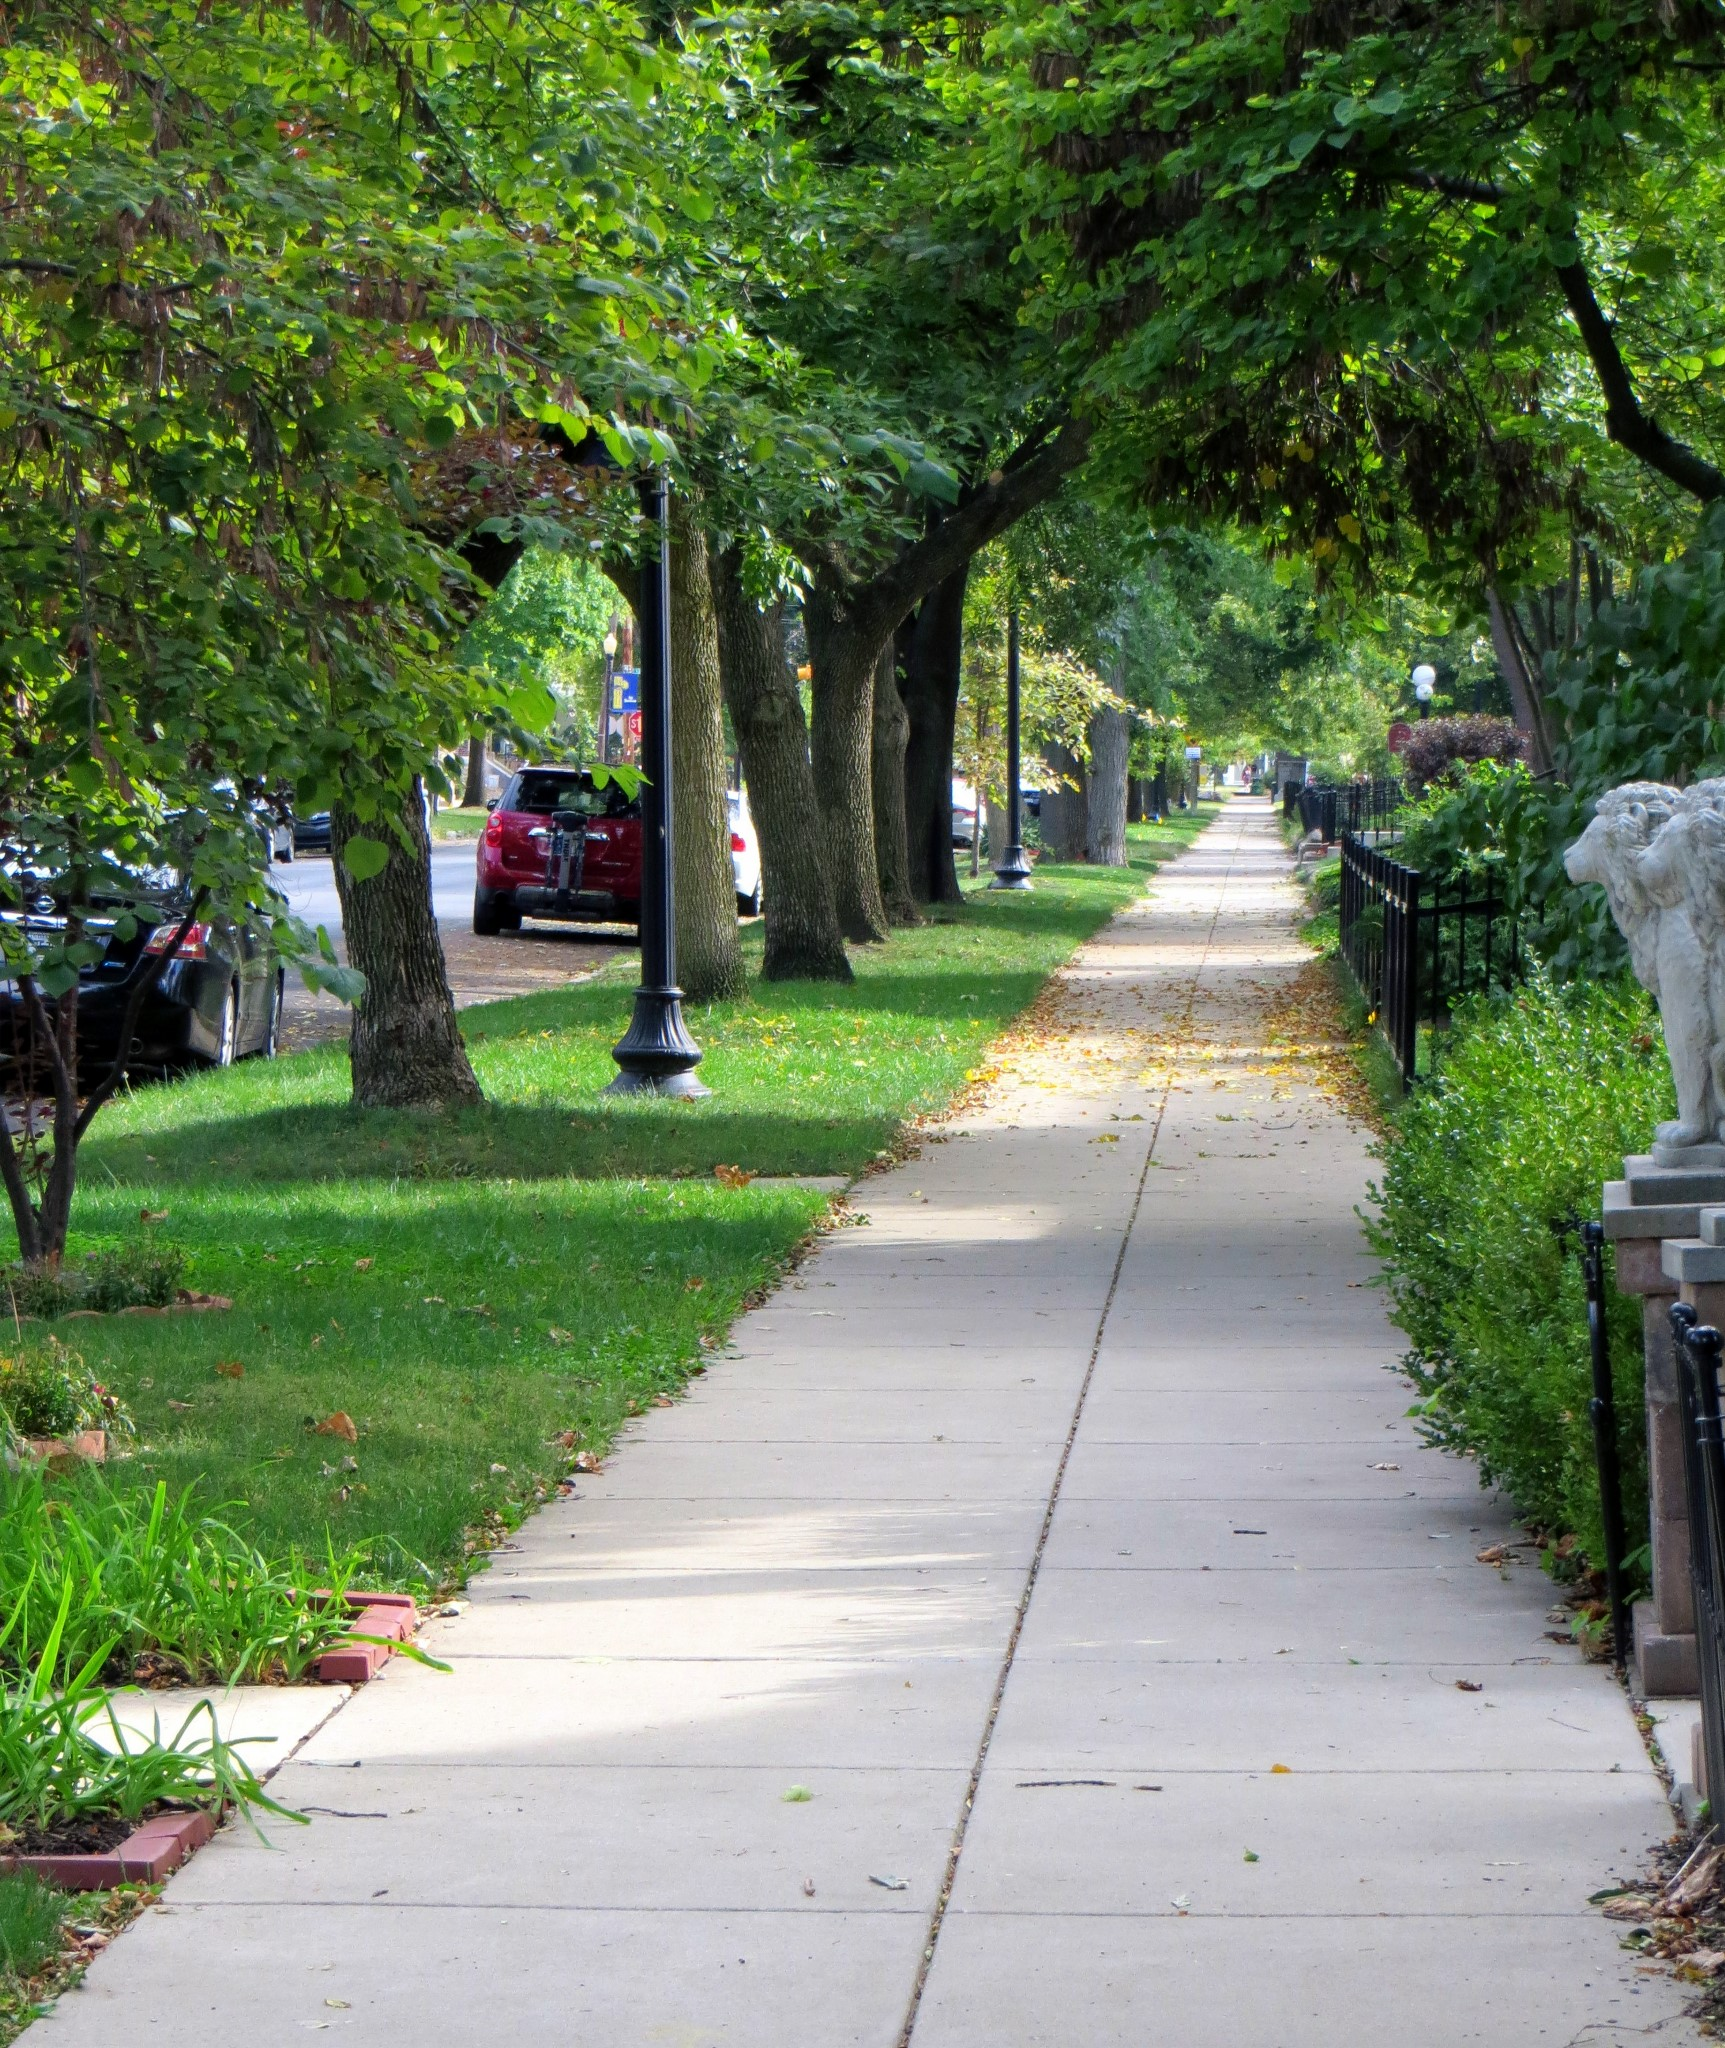 Example of a good sidewalk with a planting strip or right of way between it and the street